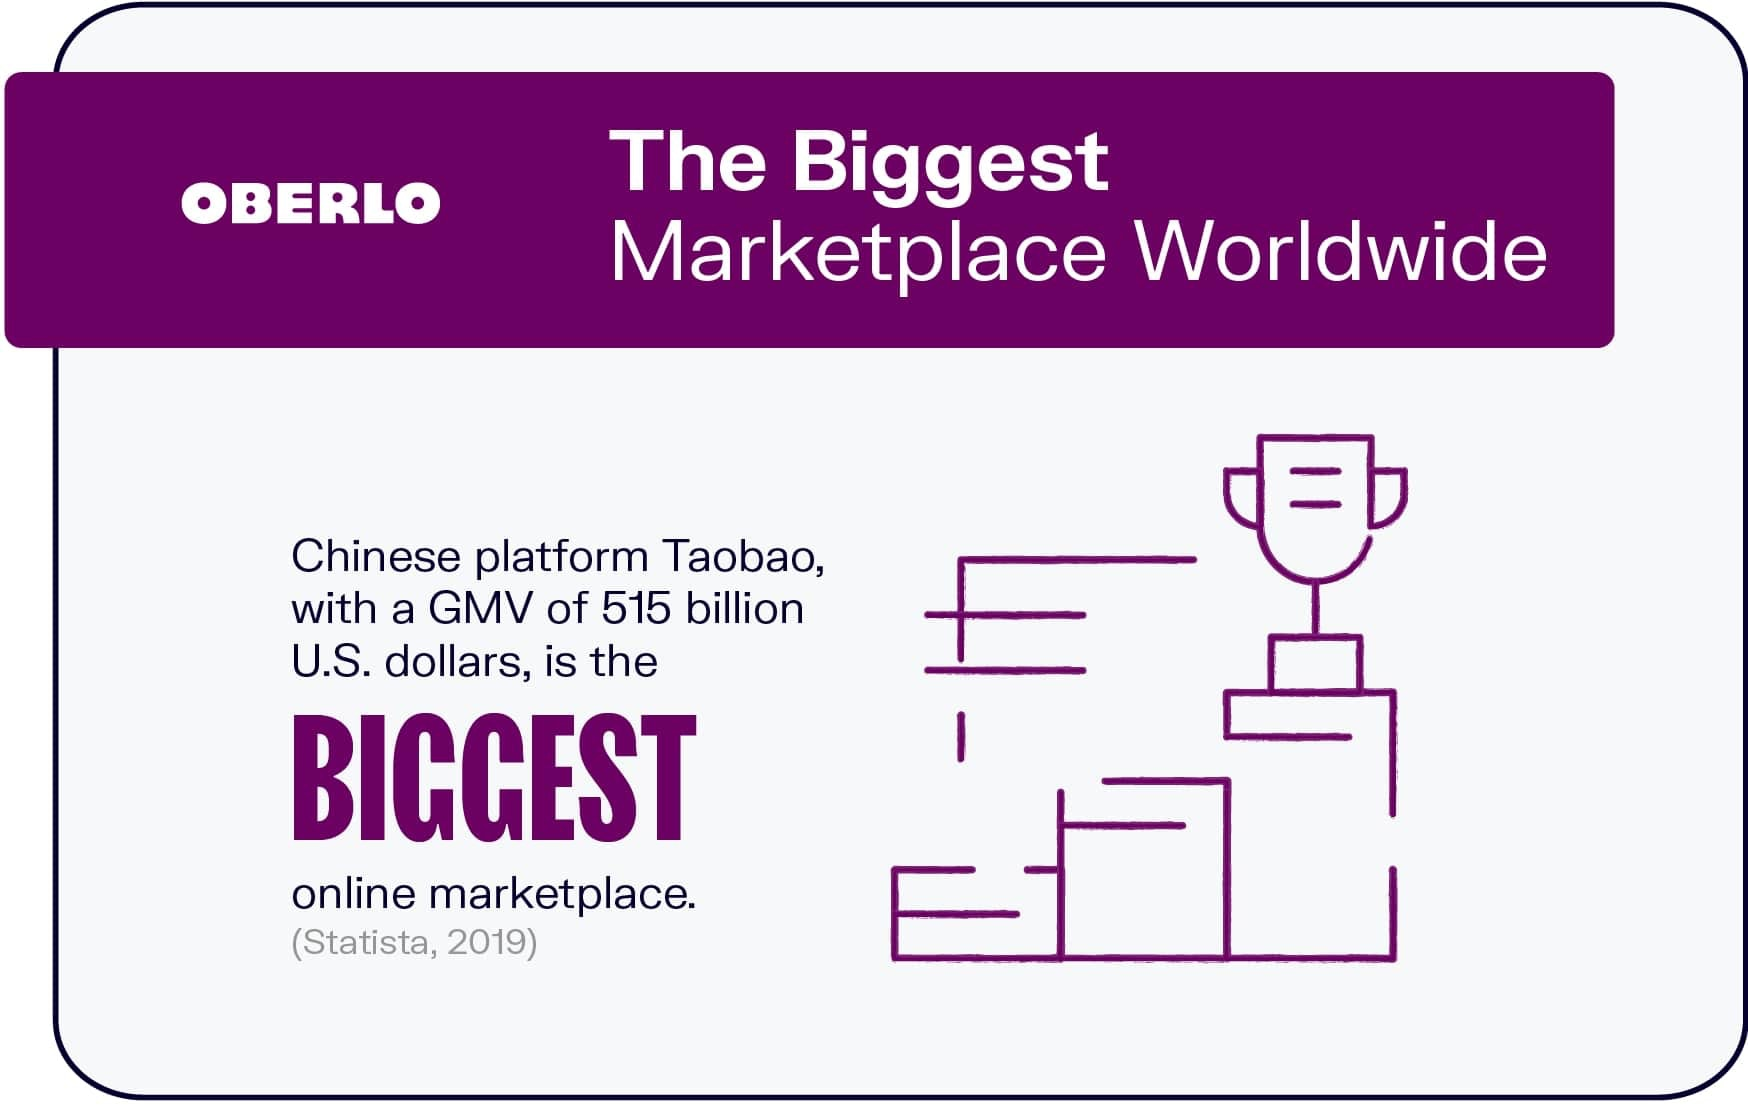 The Biggest Marketplace Worldwide